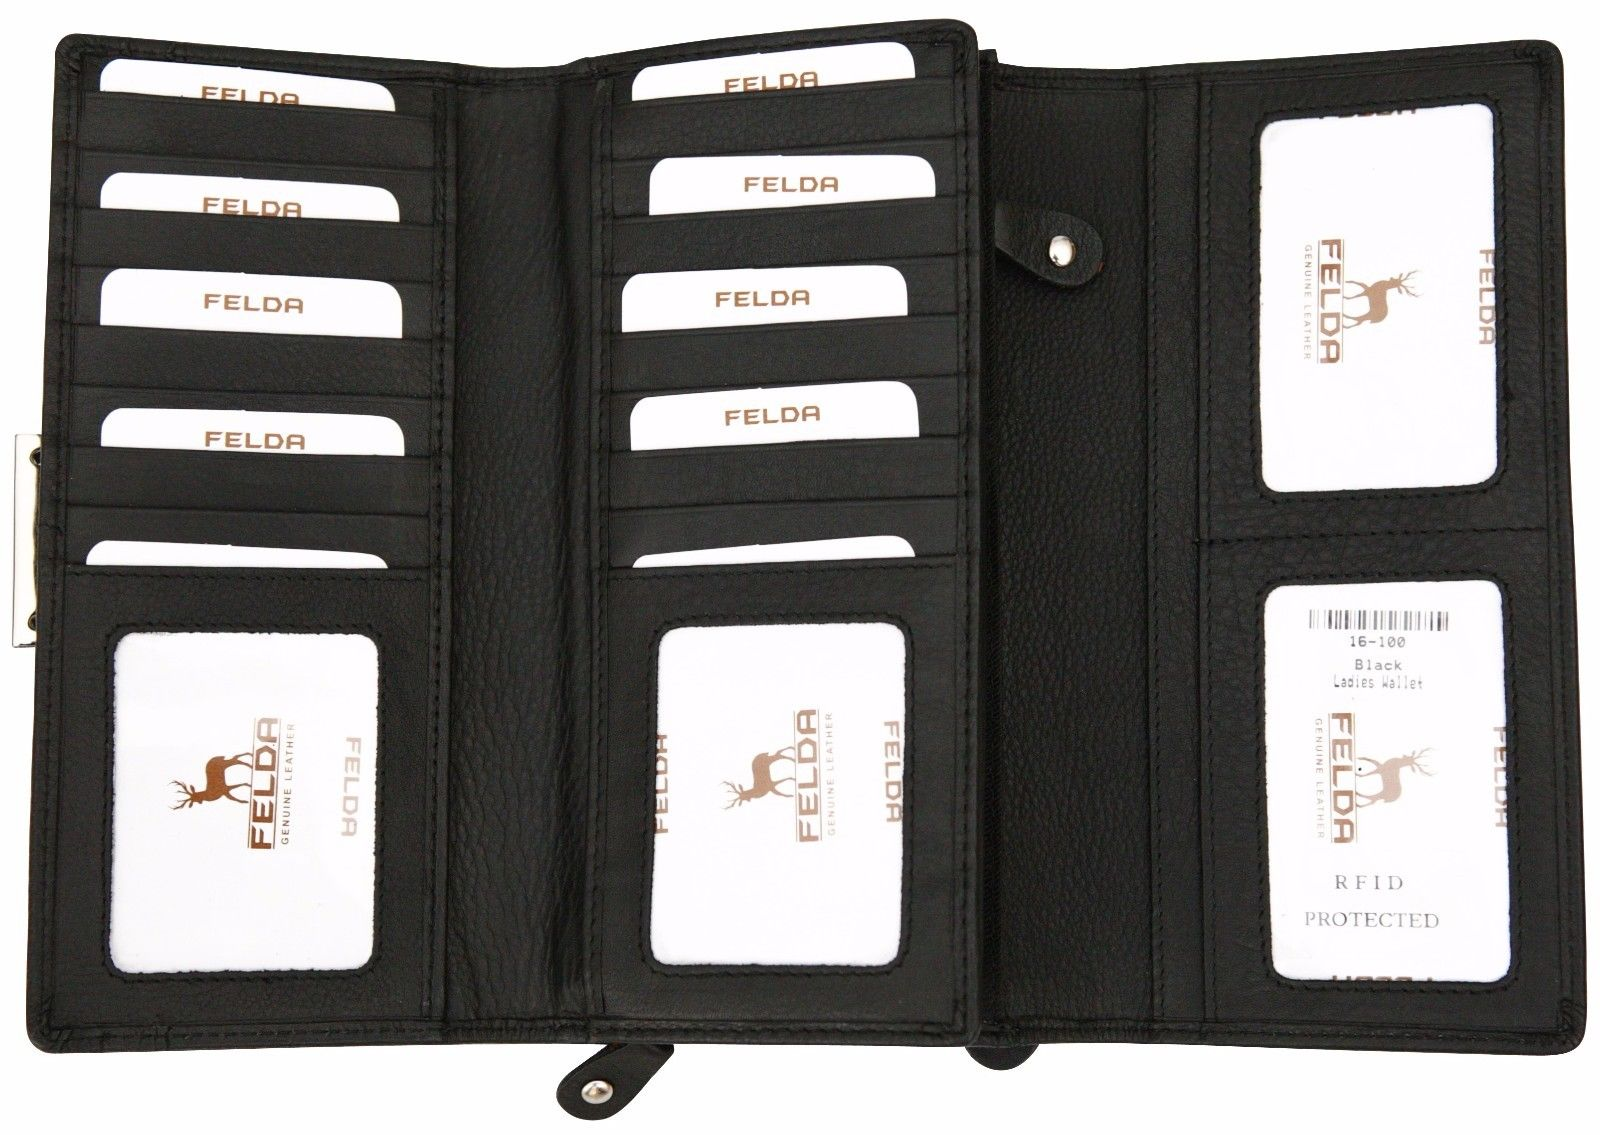 Felda-RFID-Ladies-Leather-Soft-Wallet-Large-Capacity-Purse-Womens-Multi-24-Card miniatuur 16